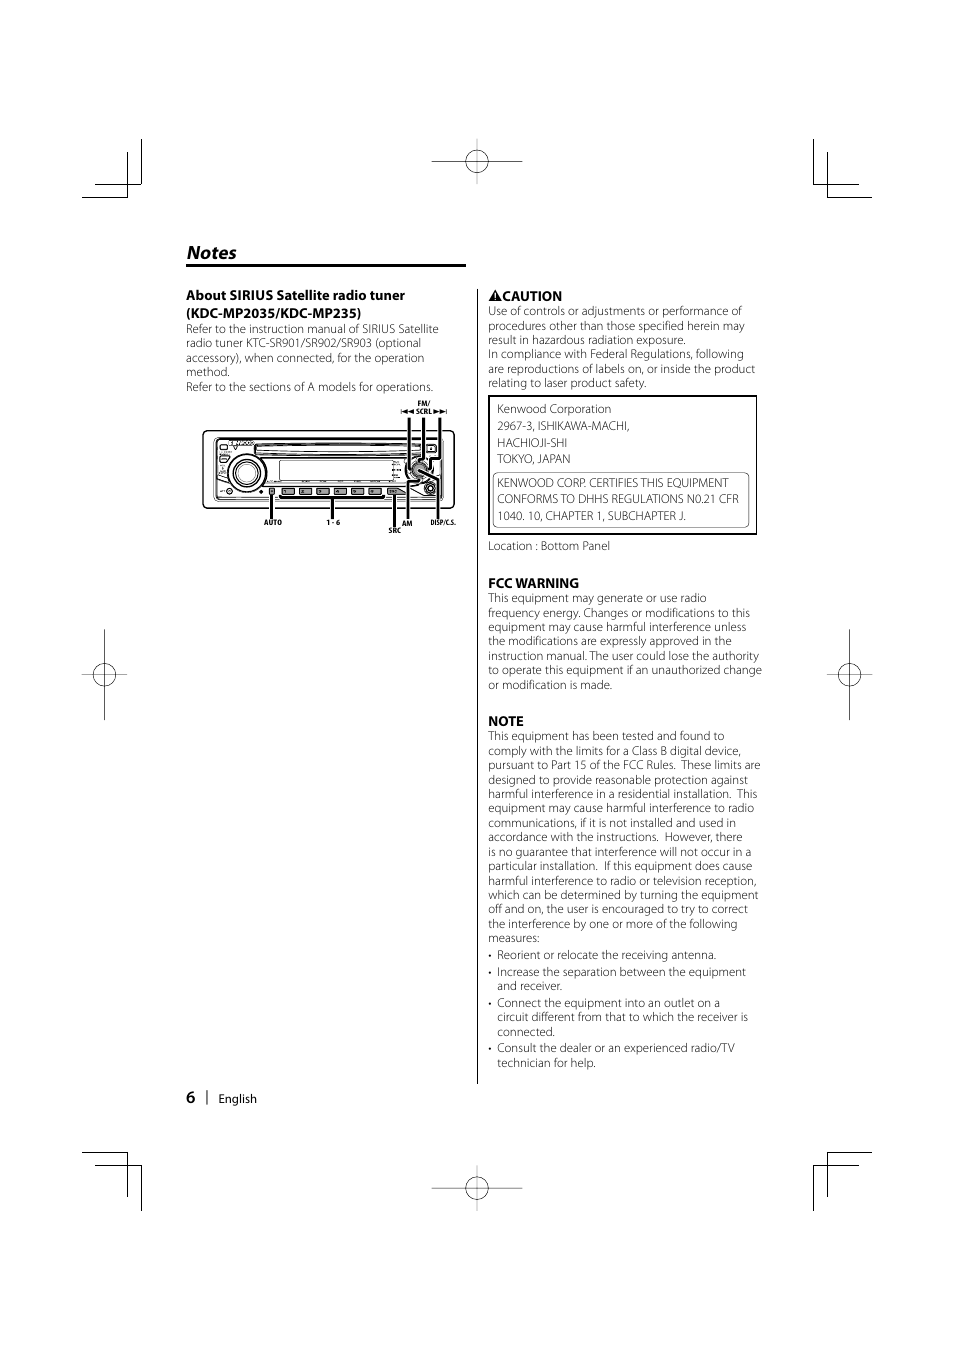 Kenwood Kdcmp205 User Manual Page 6 96 Also For Kdcmp2035. Kenwood Kdcmp205 User Manual Page 6 96 Also For Kdcmp2035 Kdc Mp235cr. Wiring. Kenwood Kdc Mp205 Wiring Diagram Stereo At Scoala.co